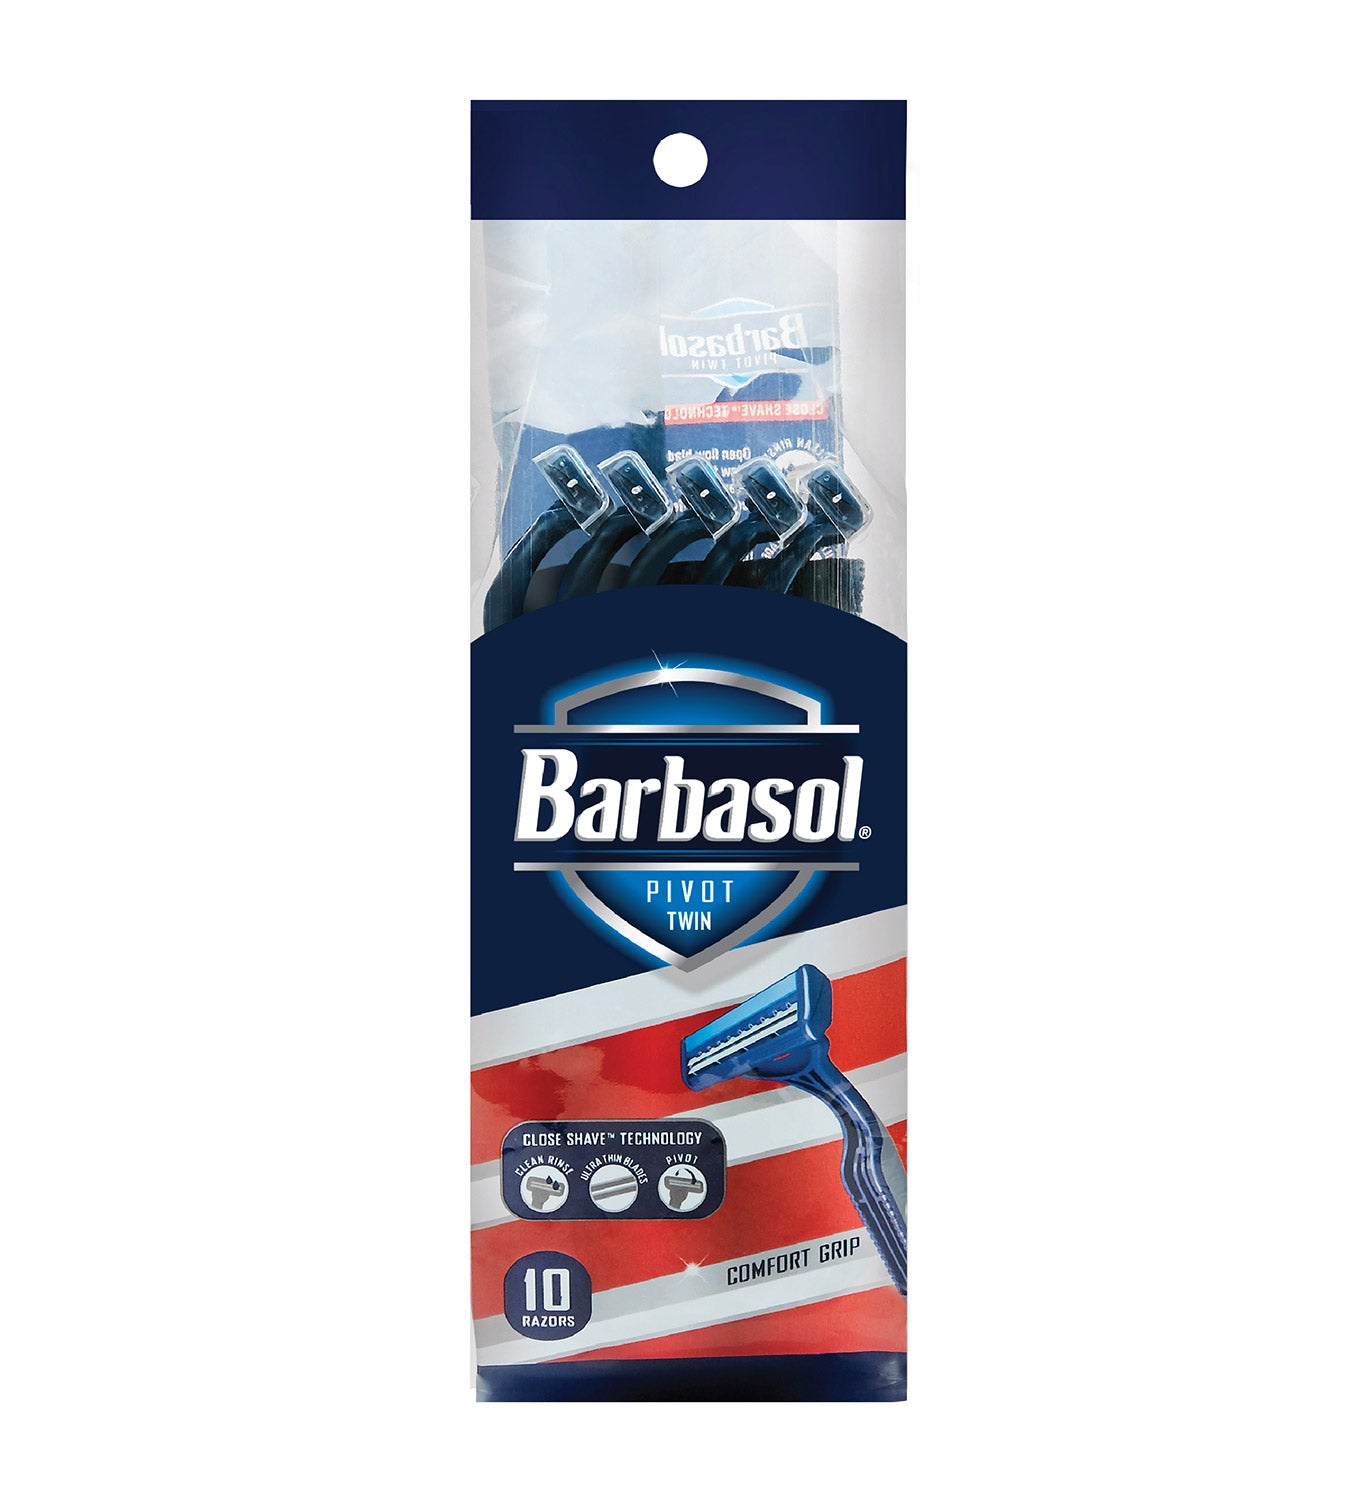 Barbasol Pivot Twin Disposable Razors, 10 Count